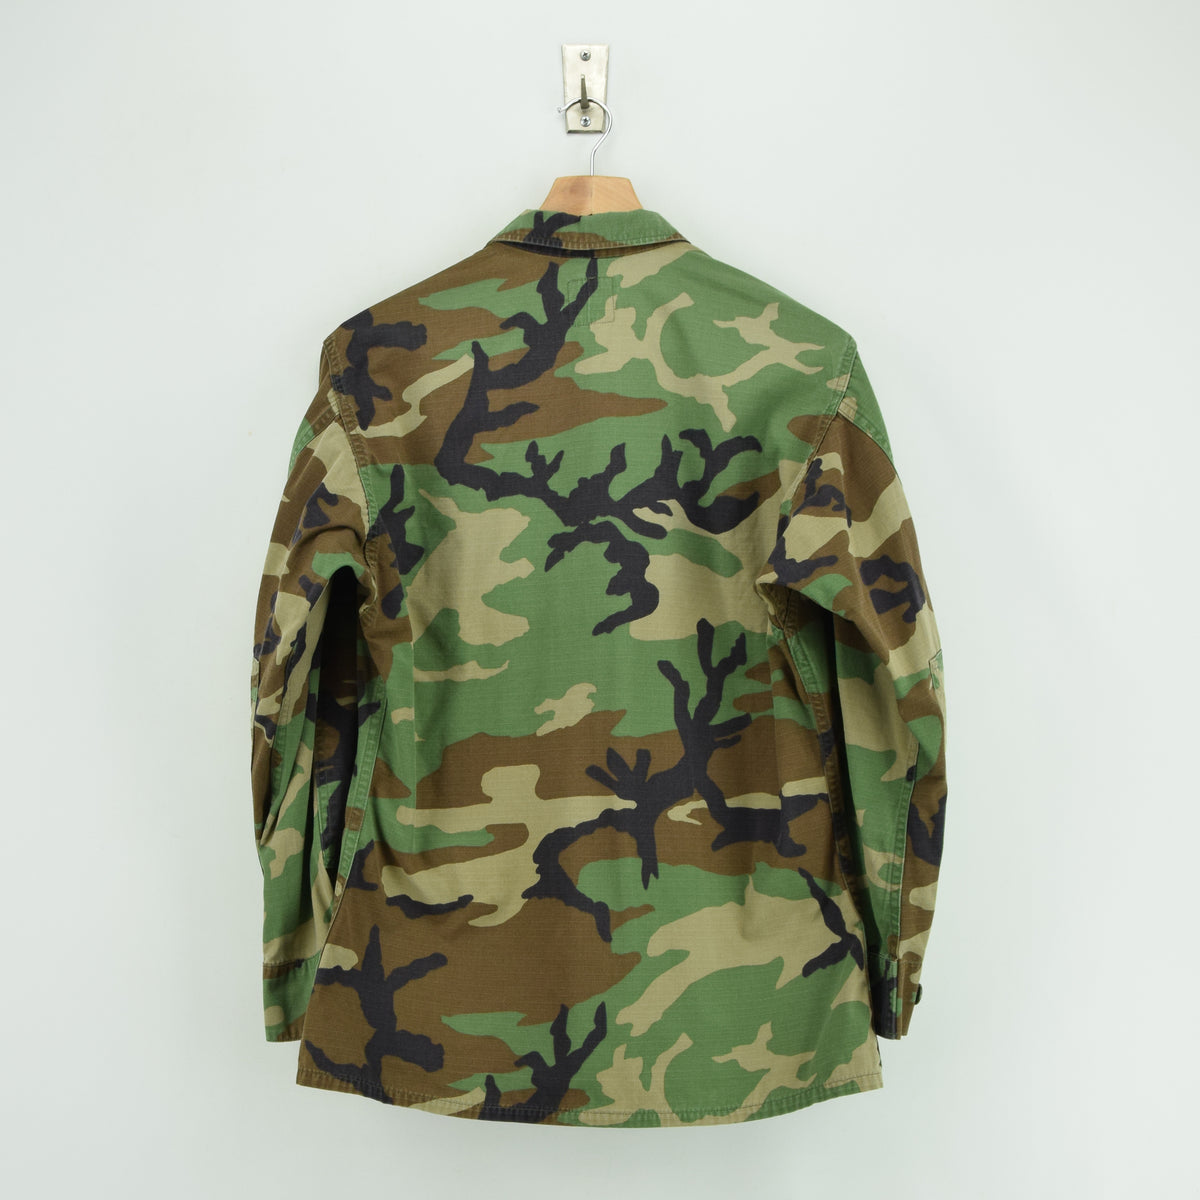 Vintage 90s US Air Force Woodland Camouflage Combat Coat Field Jacket S Short back